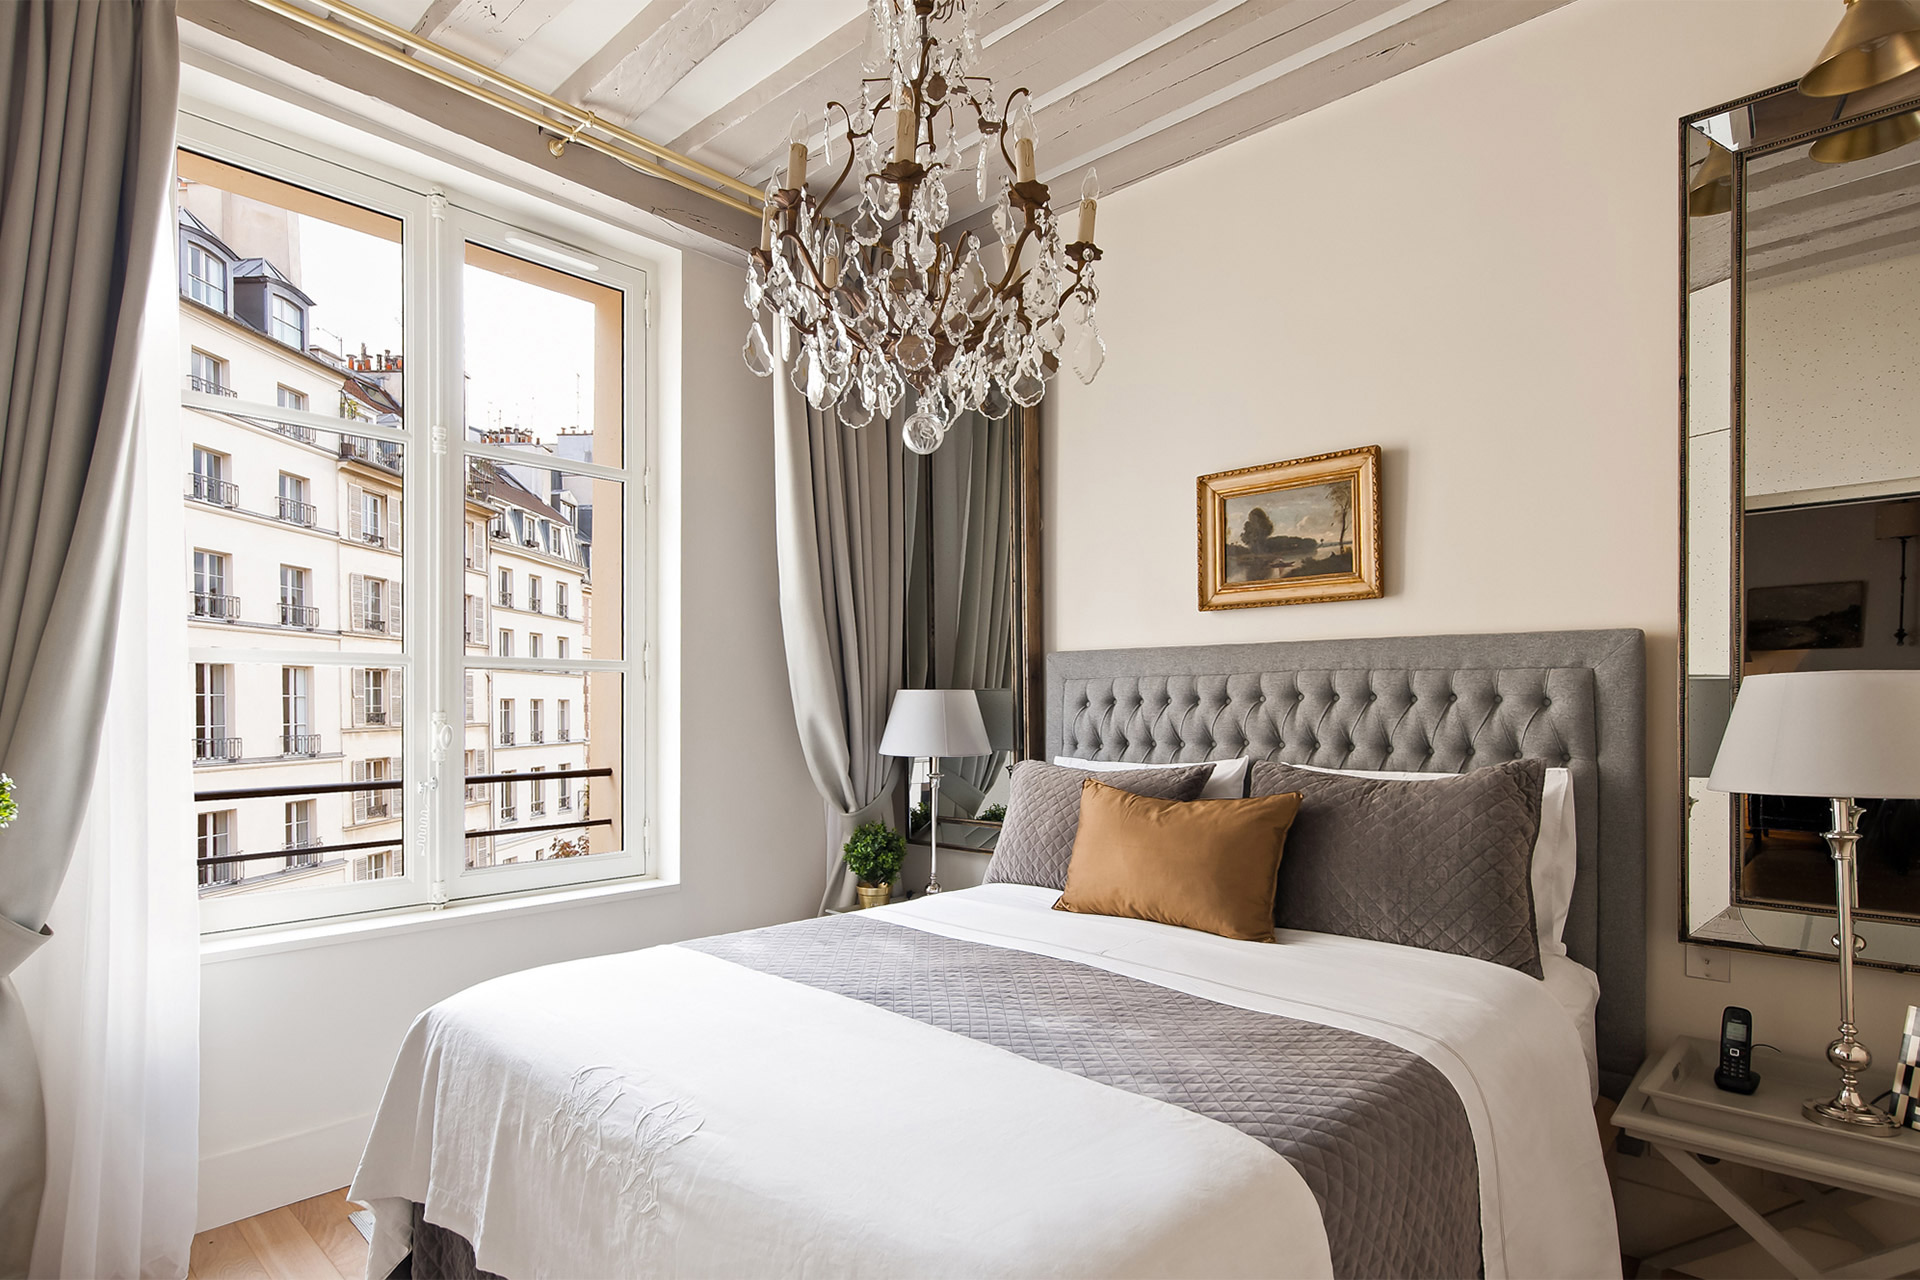 Step into this elegant bedroom in the Castillon vacation rental offered by Paris Perfect